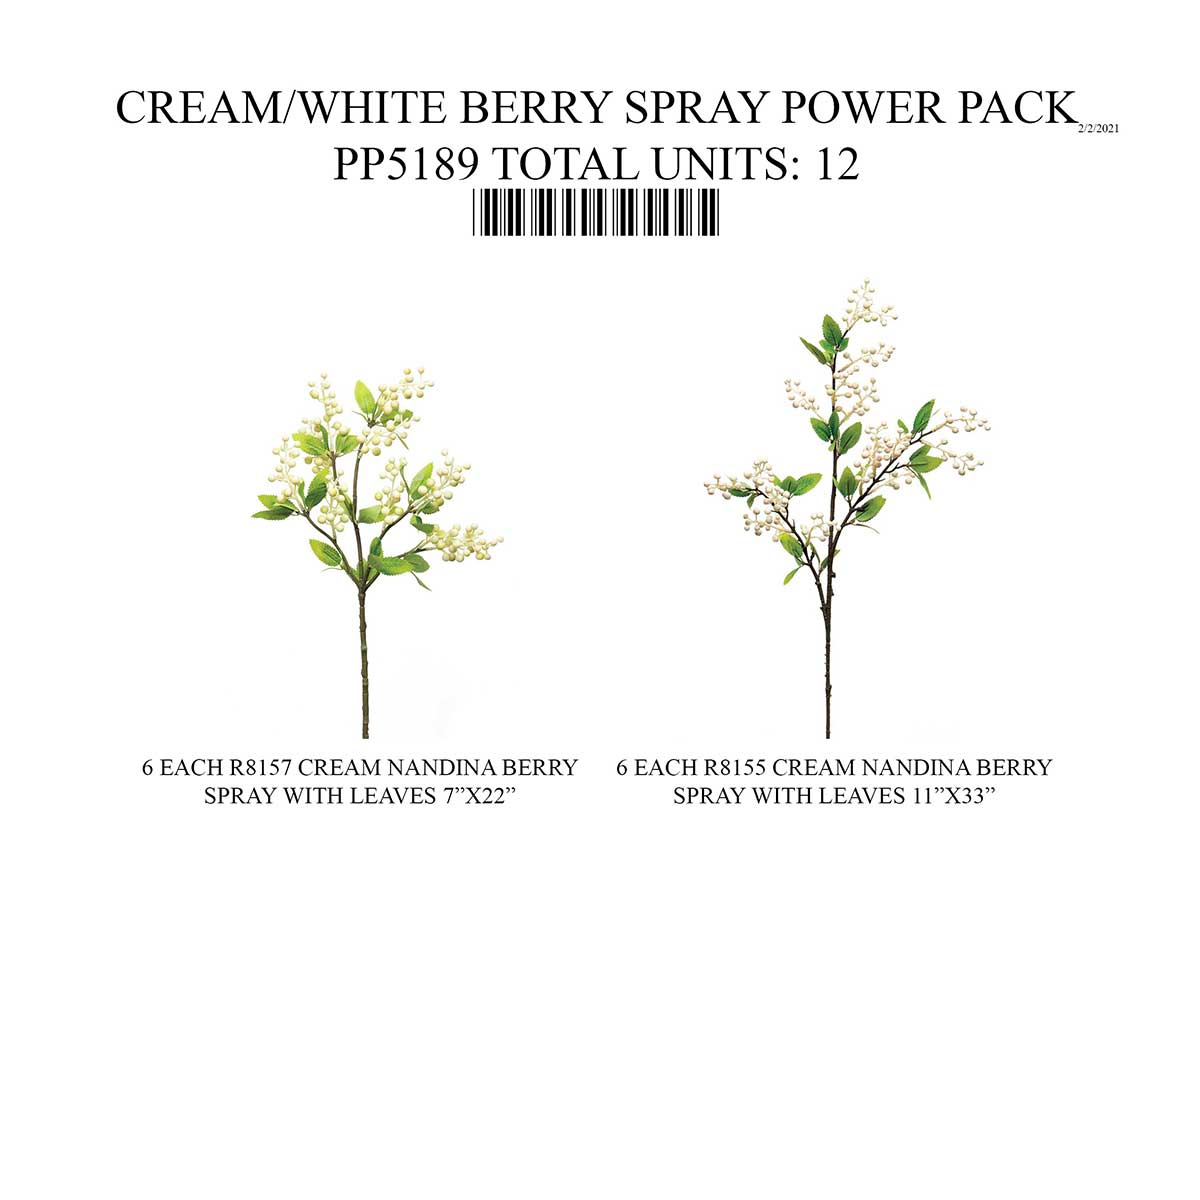 NON-POP BERRY SPRAY CREAM/WHITE 12 UNITS PP5189